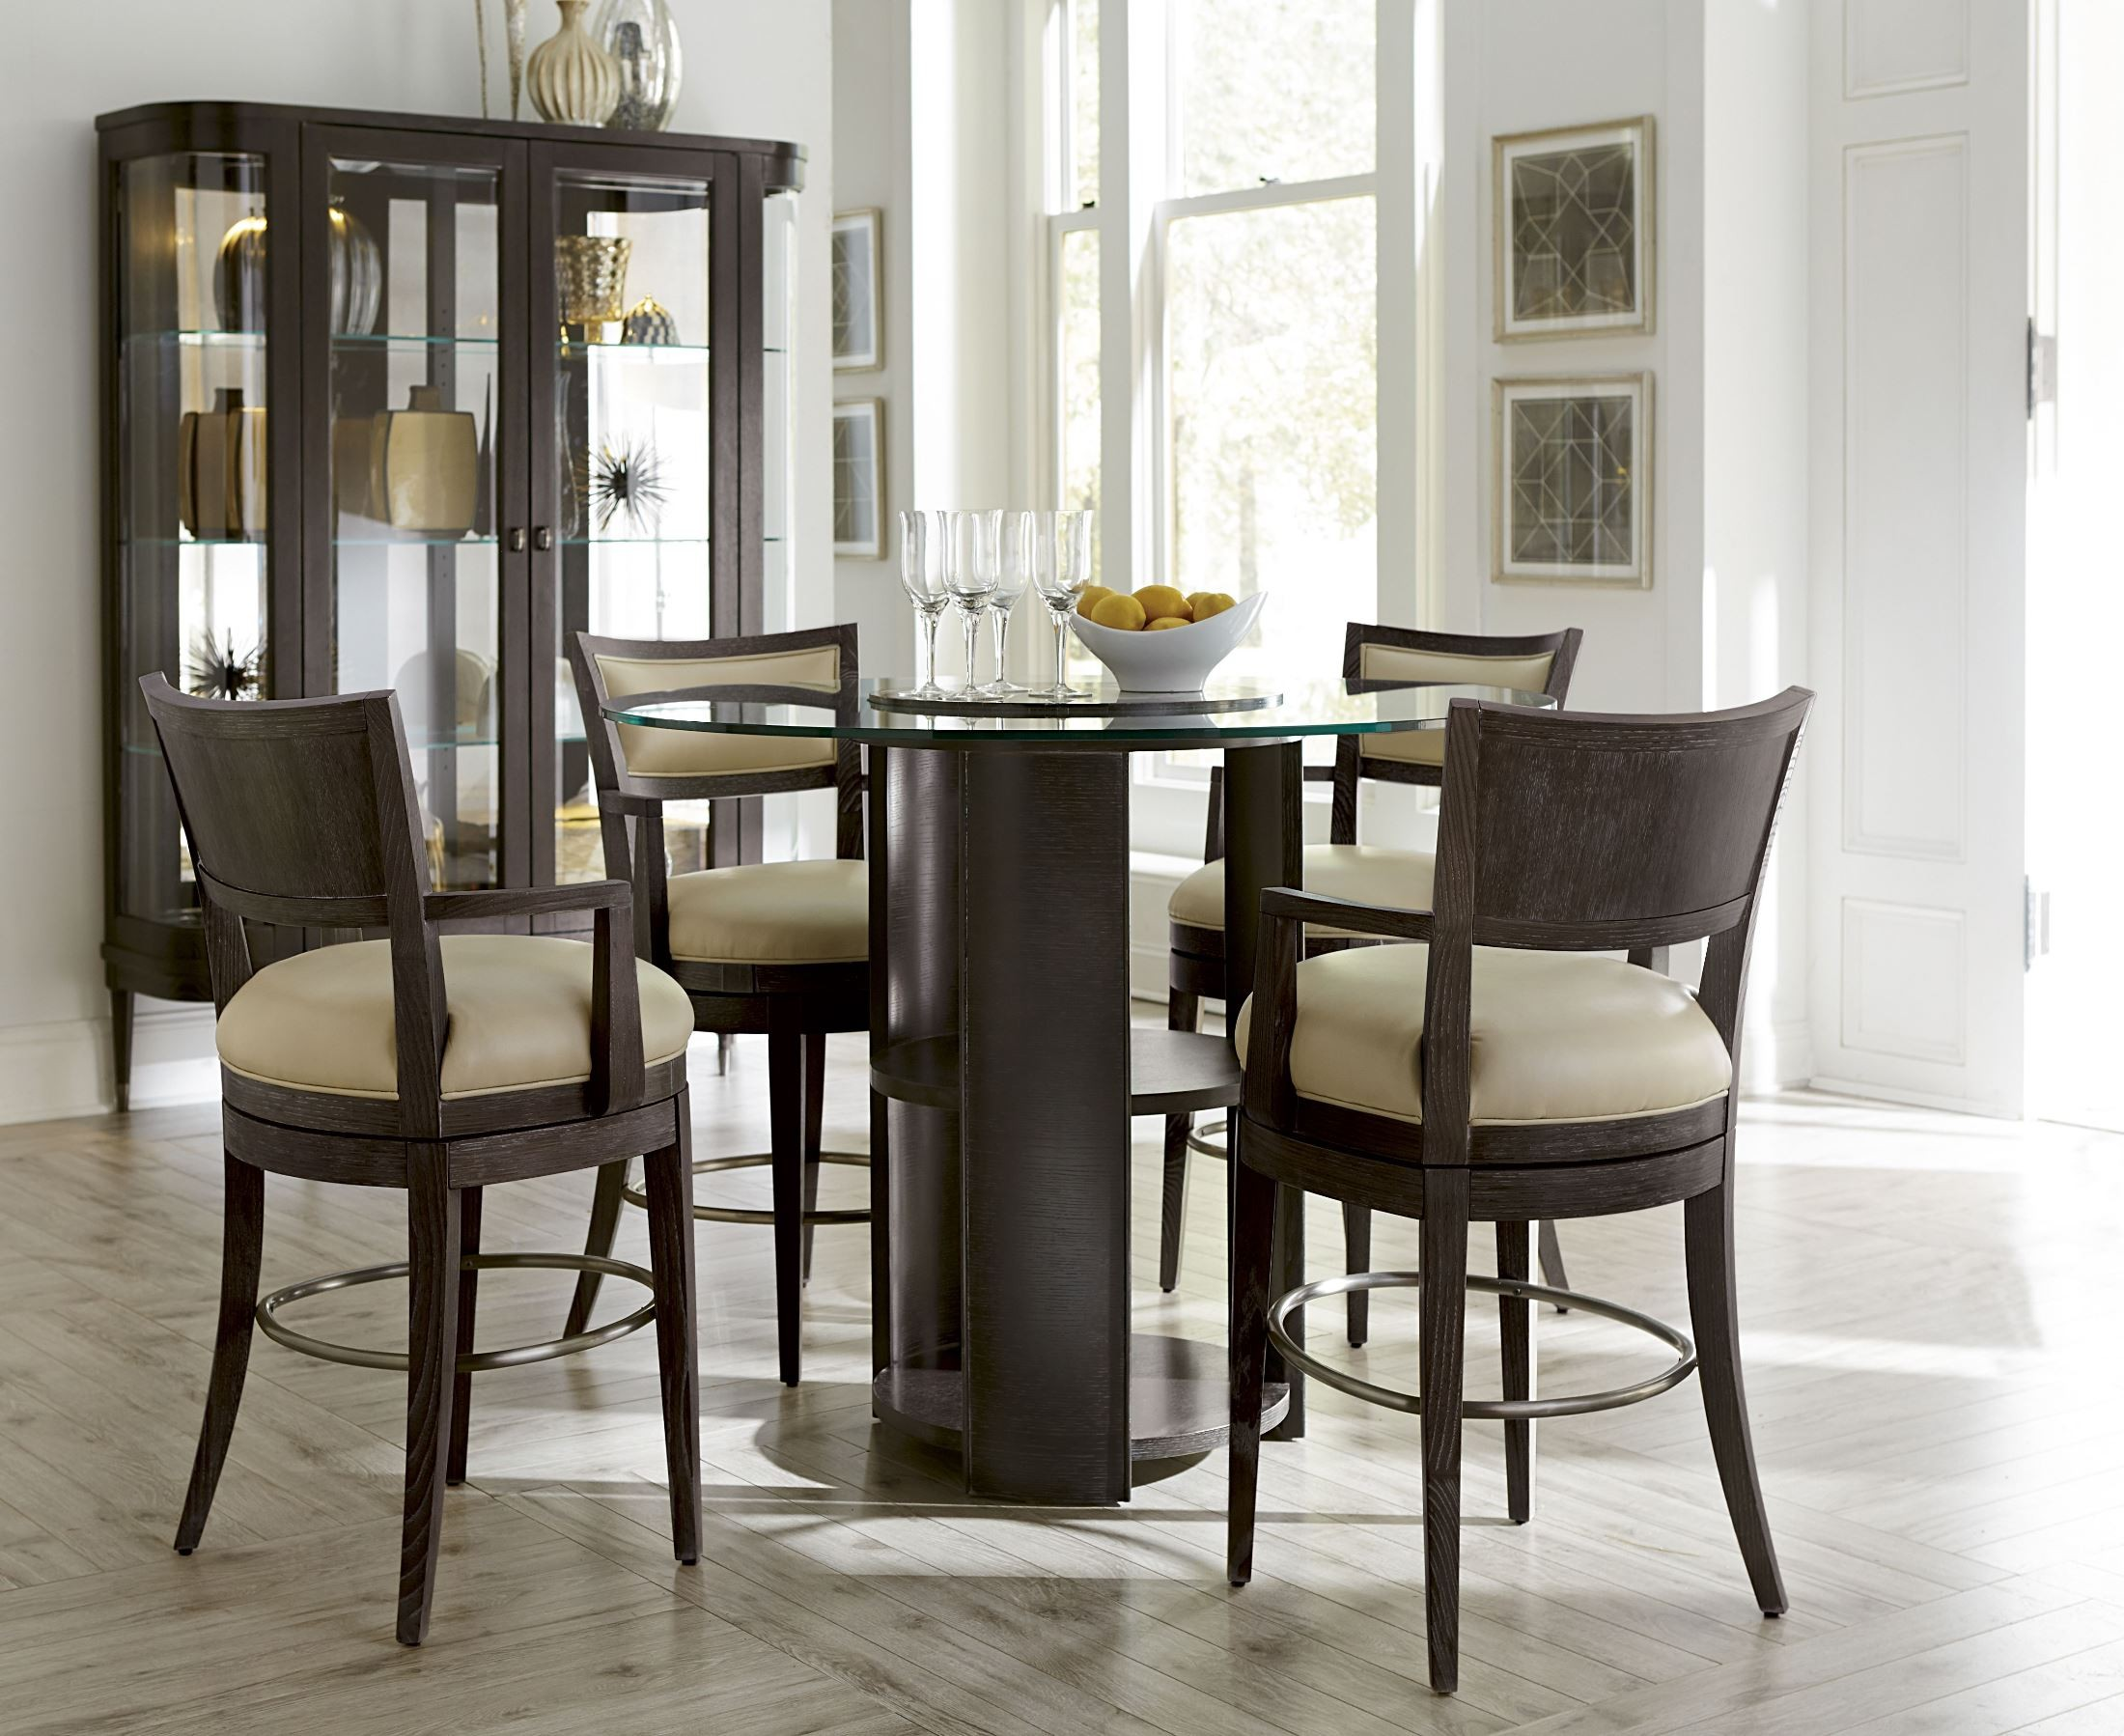 high dining room set from art 214230 2304 coleman furniture